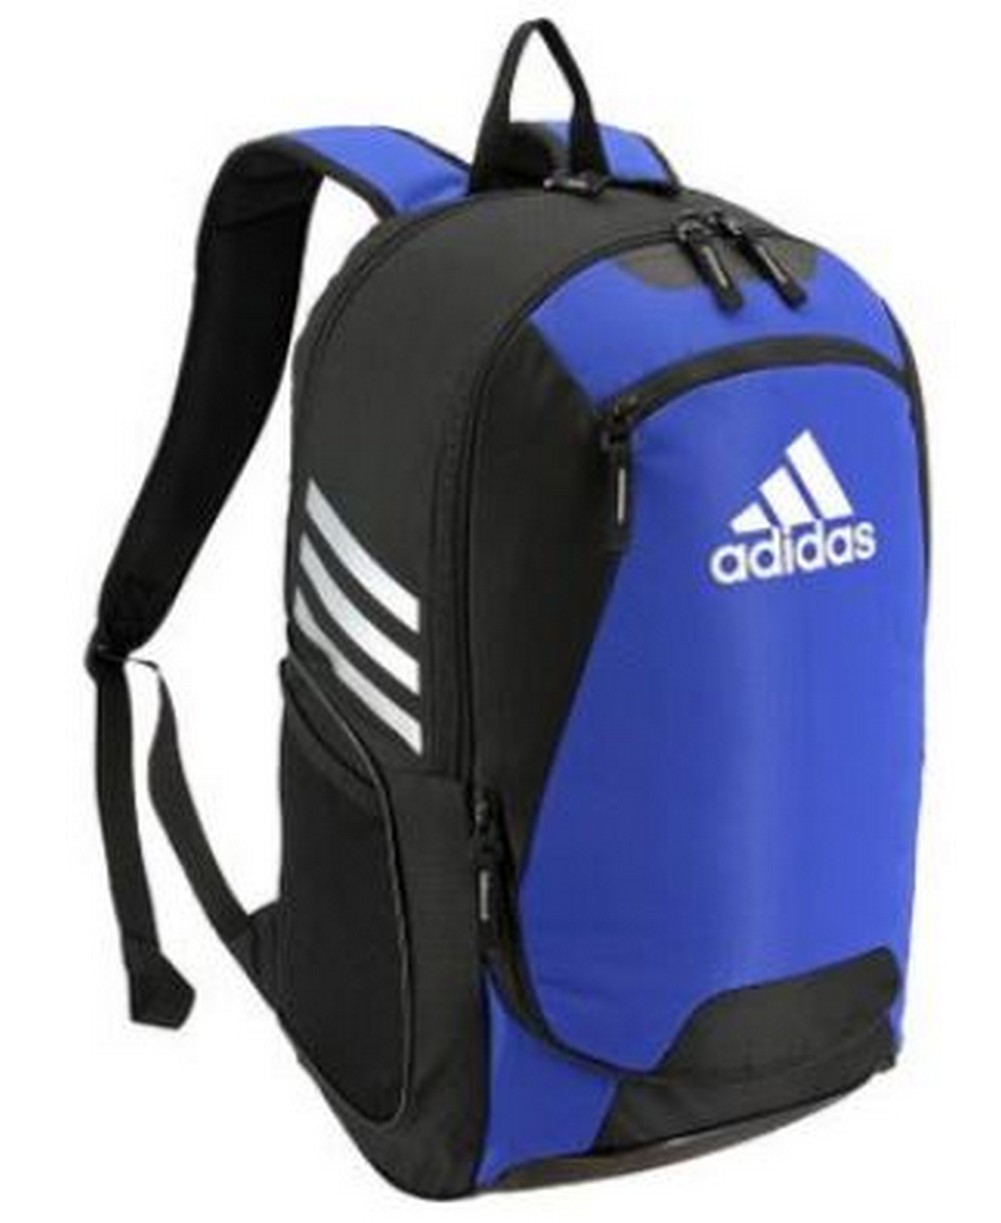 Adidas Stadium II Backpack Fits Soccer Ball Sport Bag 4 ... - photo#3